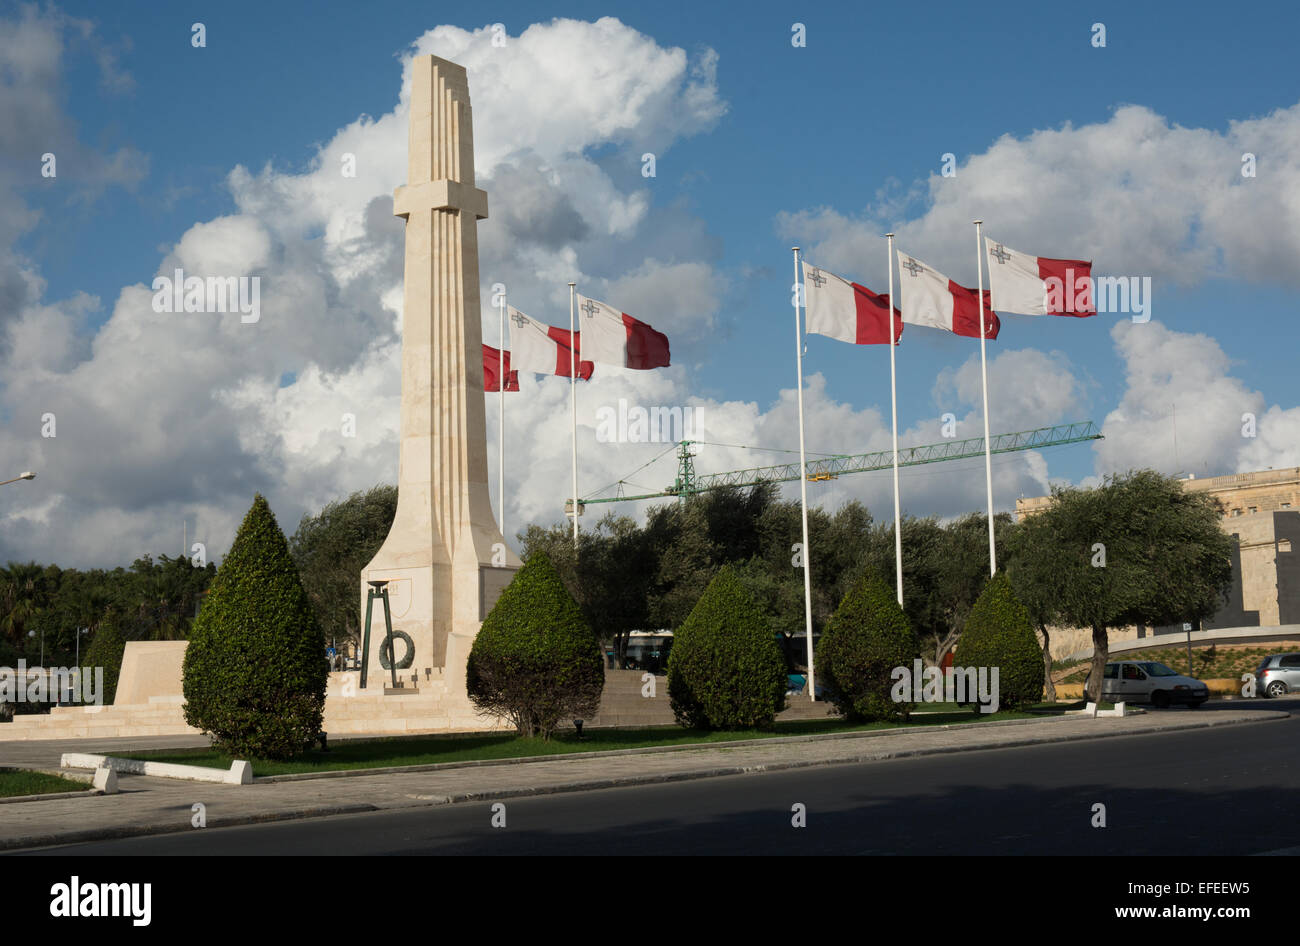 Maltese flags fly proudly in the wind by the war memorial in Floriana just outside the walls of Valletta - Stock Image